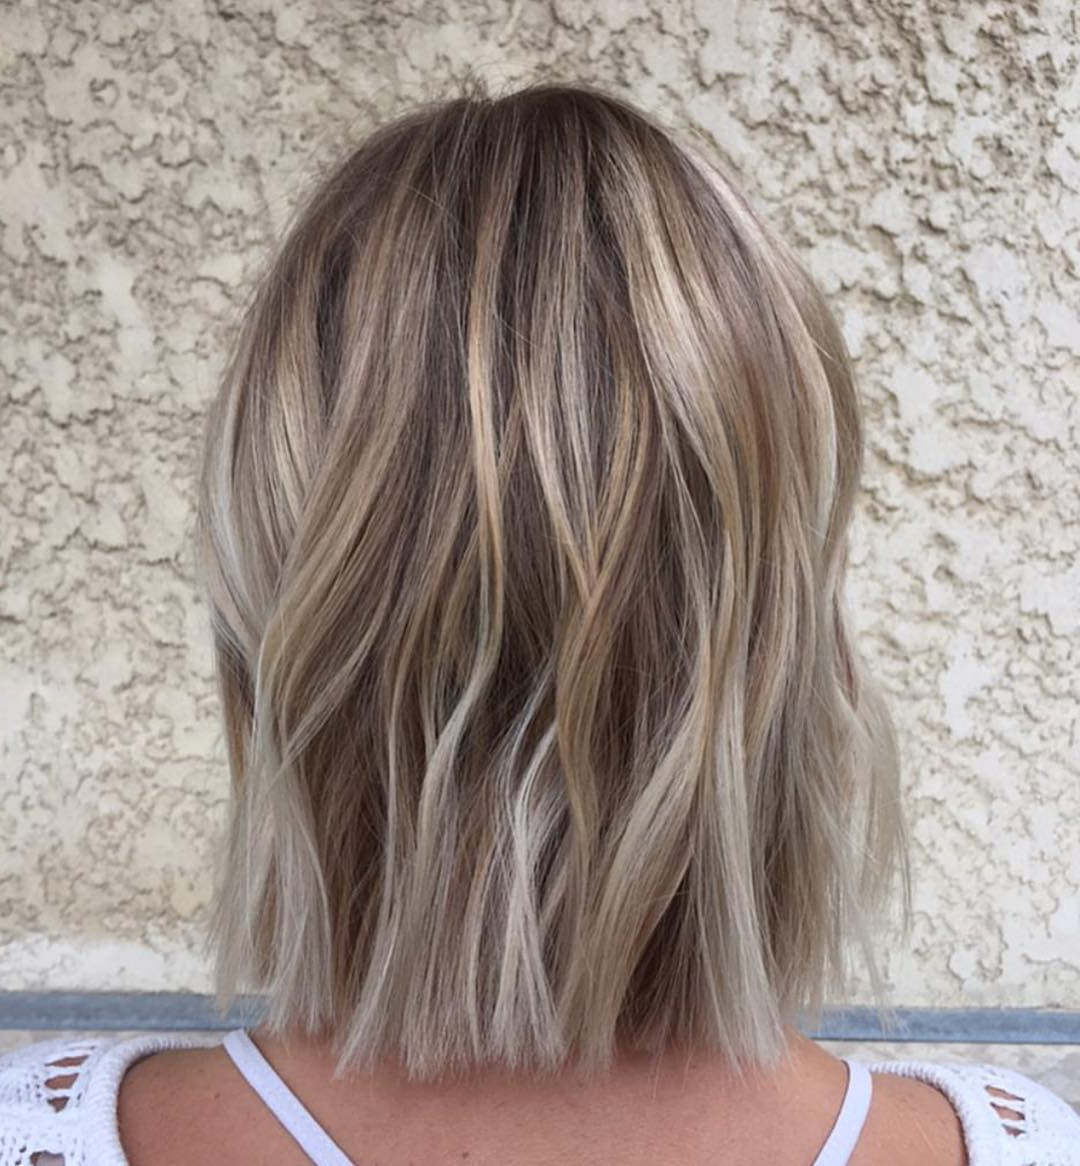 10 Balayage Ombre Hair Styles For Shoulder Length Hair, Women Pertaining To One Length Balayage Bob Hairstyles With Bangs (View 8 of 20)